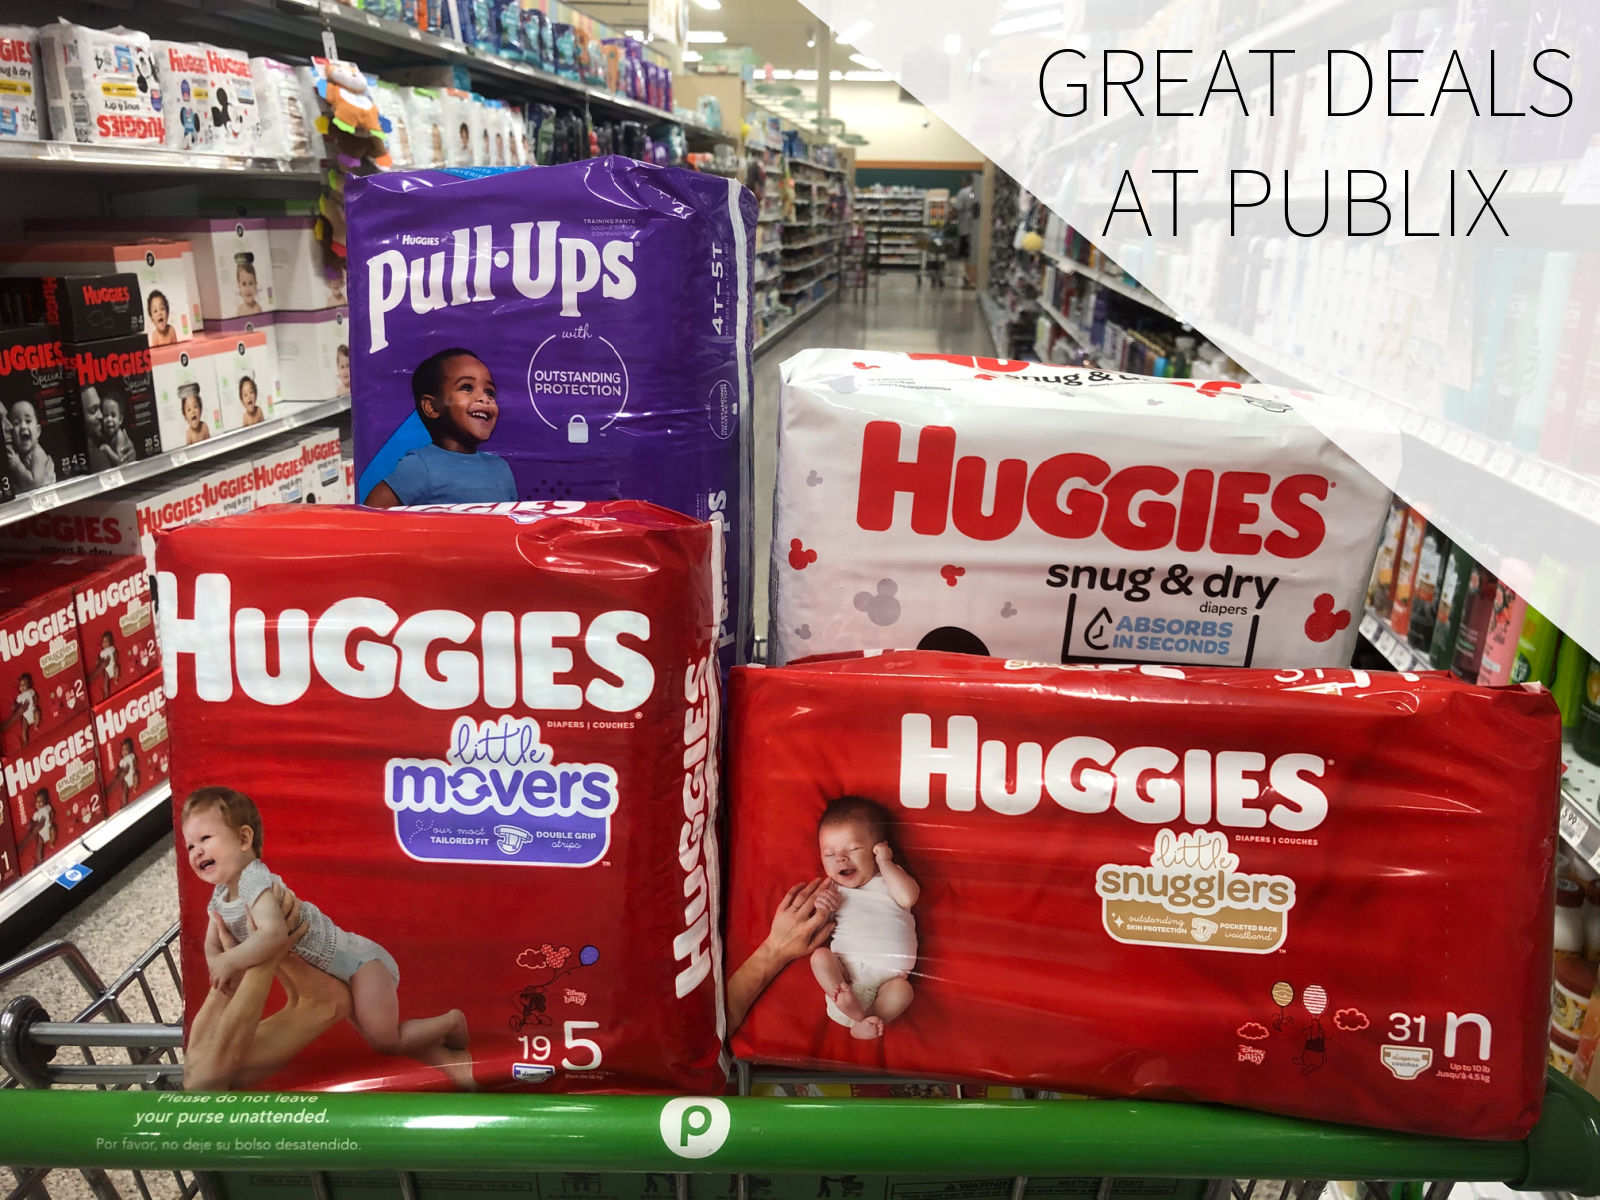 Fantastic Deals On Huggies Diapers, Pull-Ups & GoodNites This Week At Publix on I Heart Publix